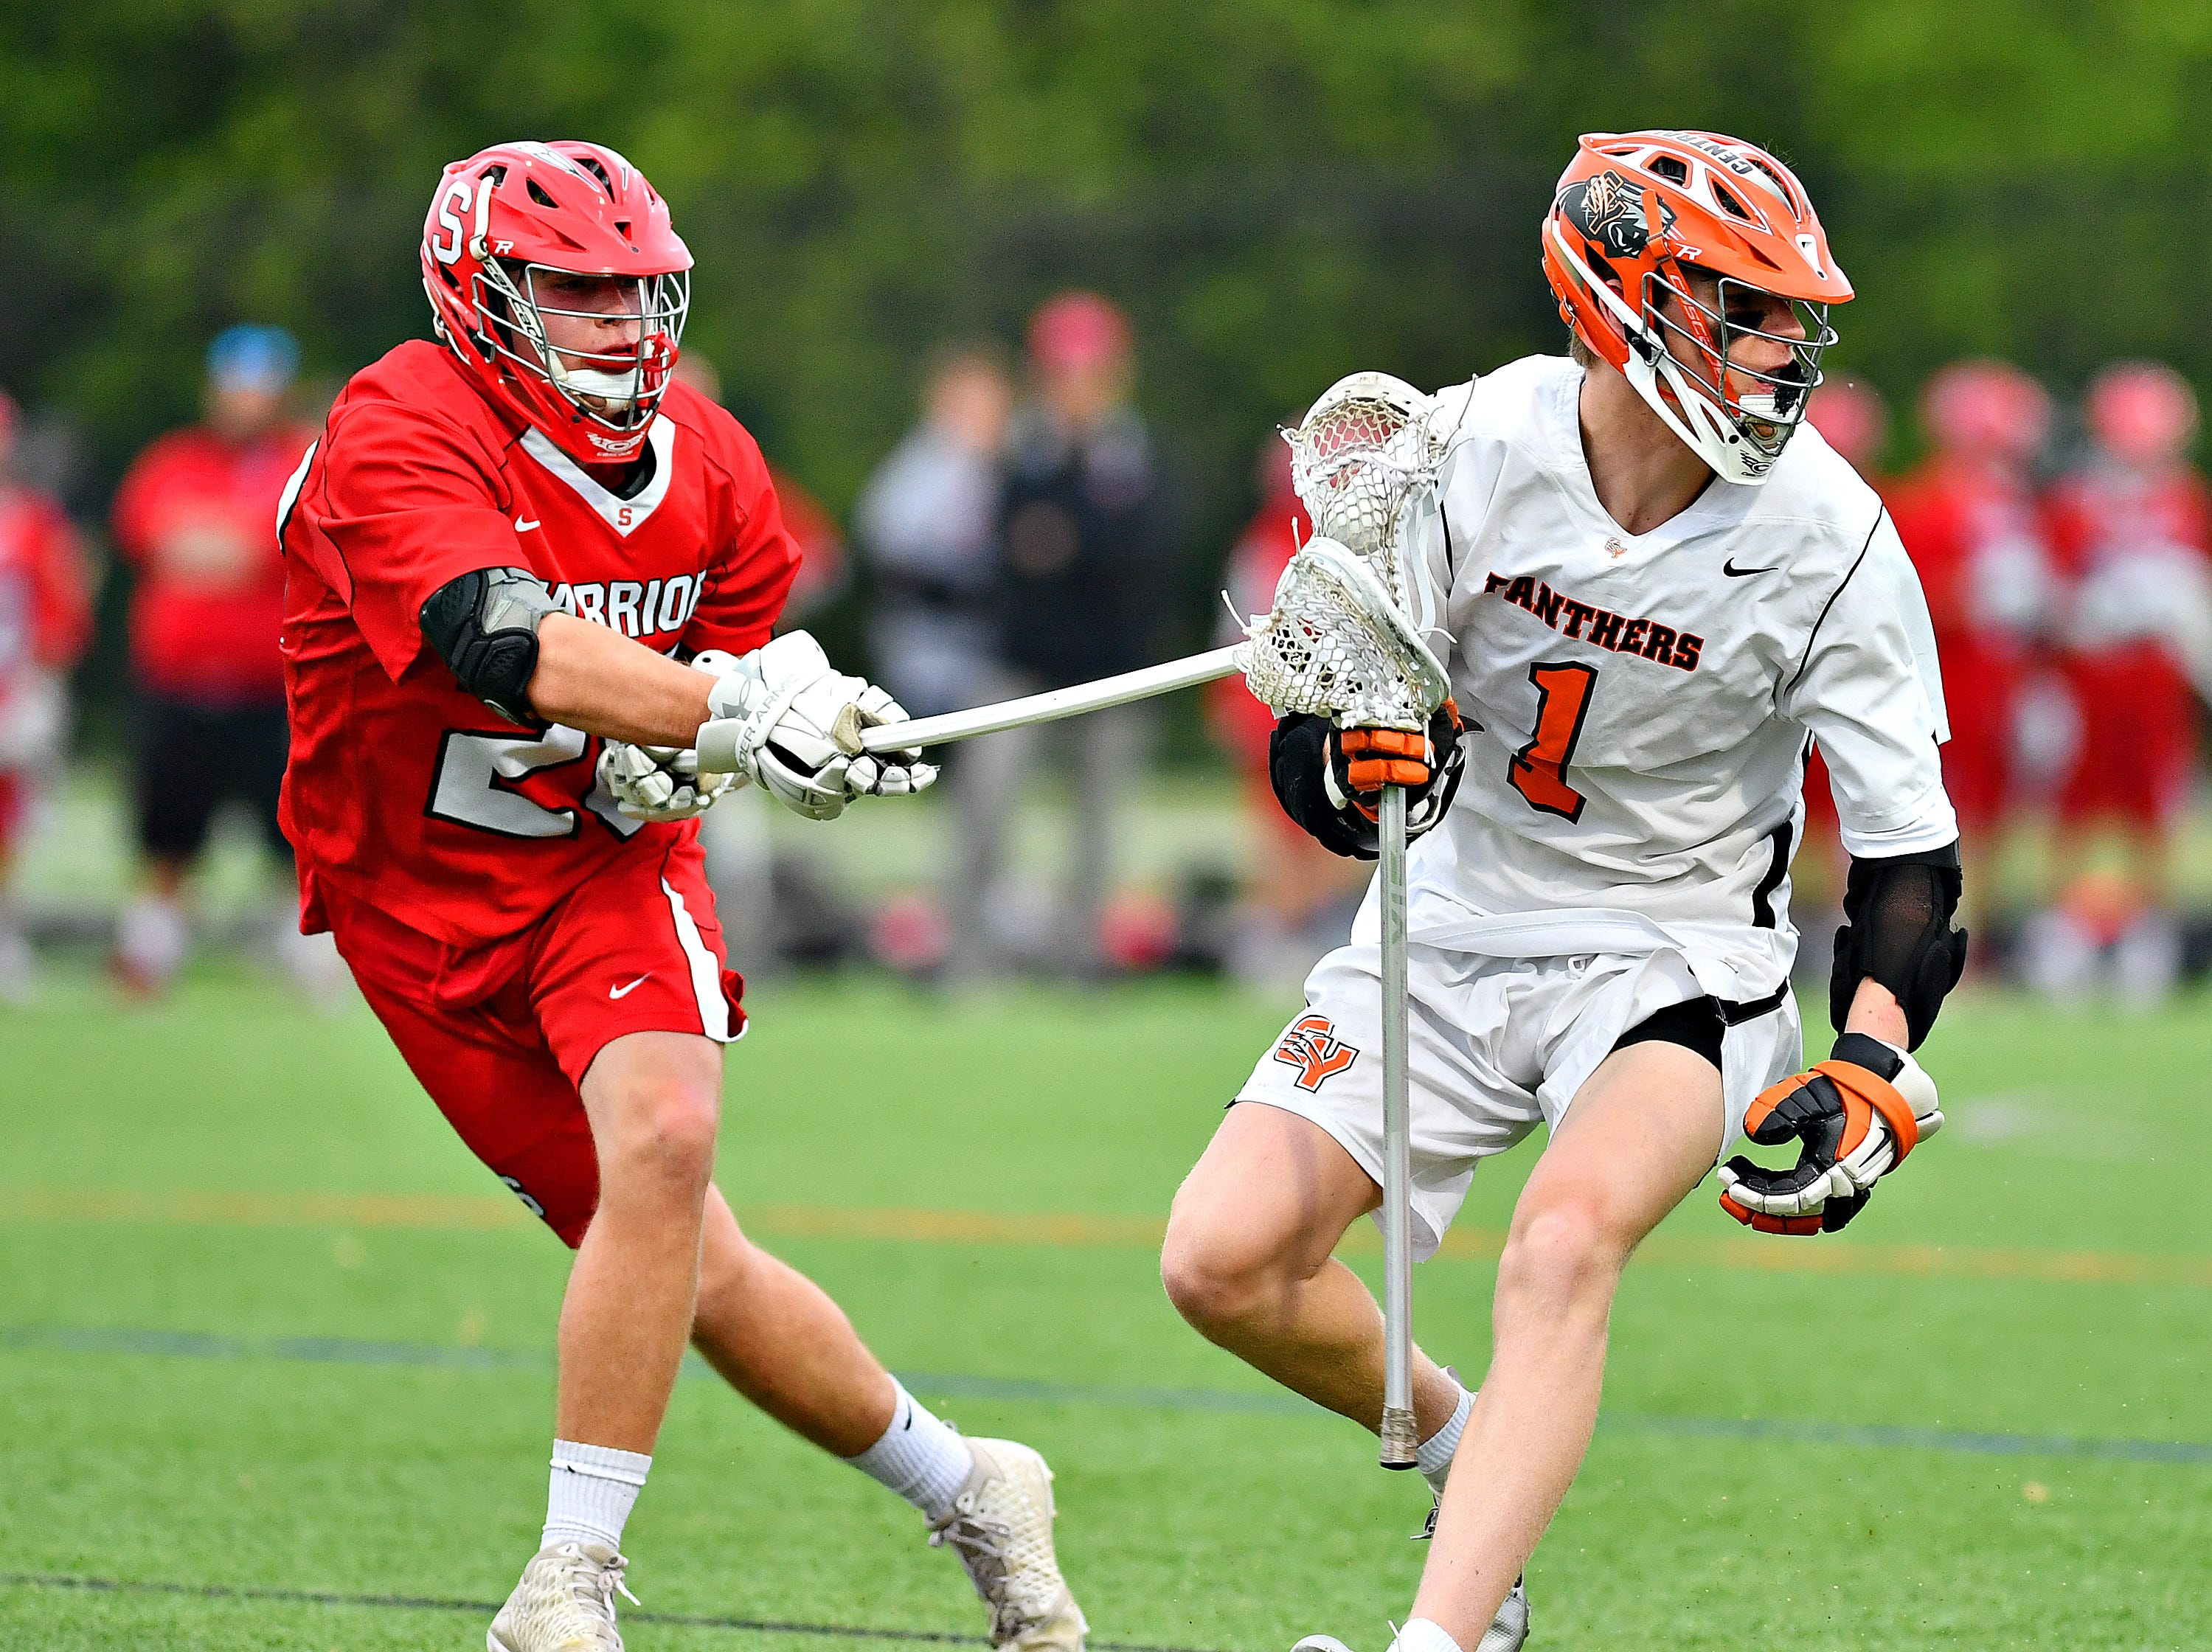 Susquehannock vs Central York during boys lacrosse semifinal action at South Western High School in Hanover, Wednesday, May 8, 2019. Central York would win the game 10-4. Dawn J. Sagert photo